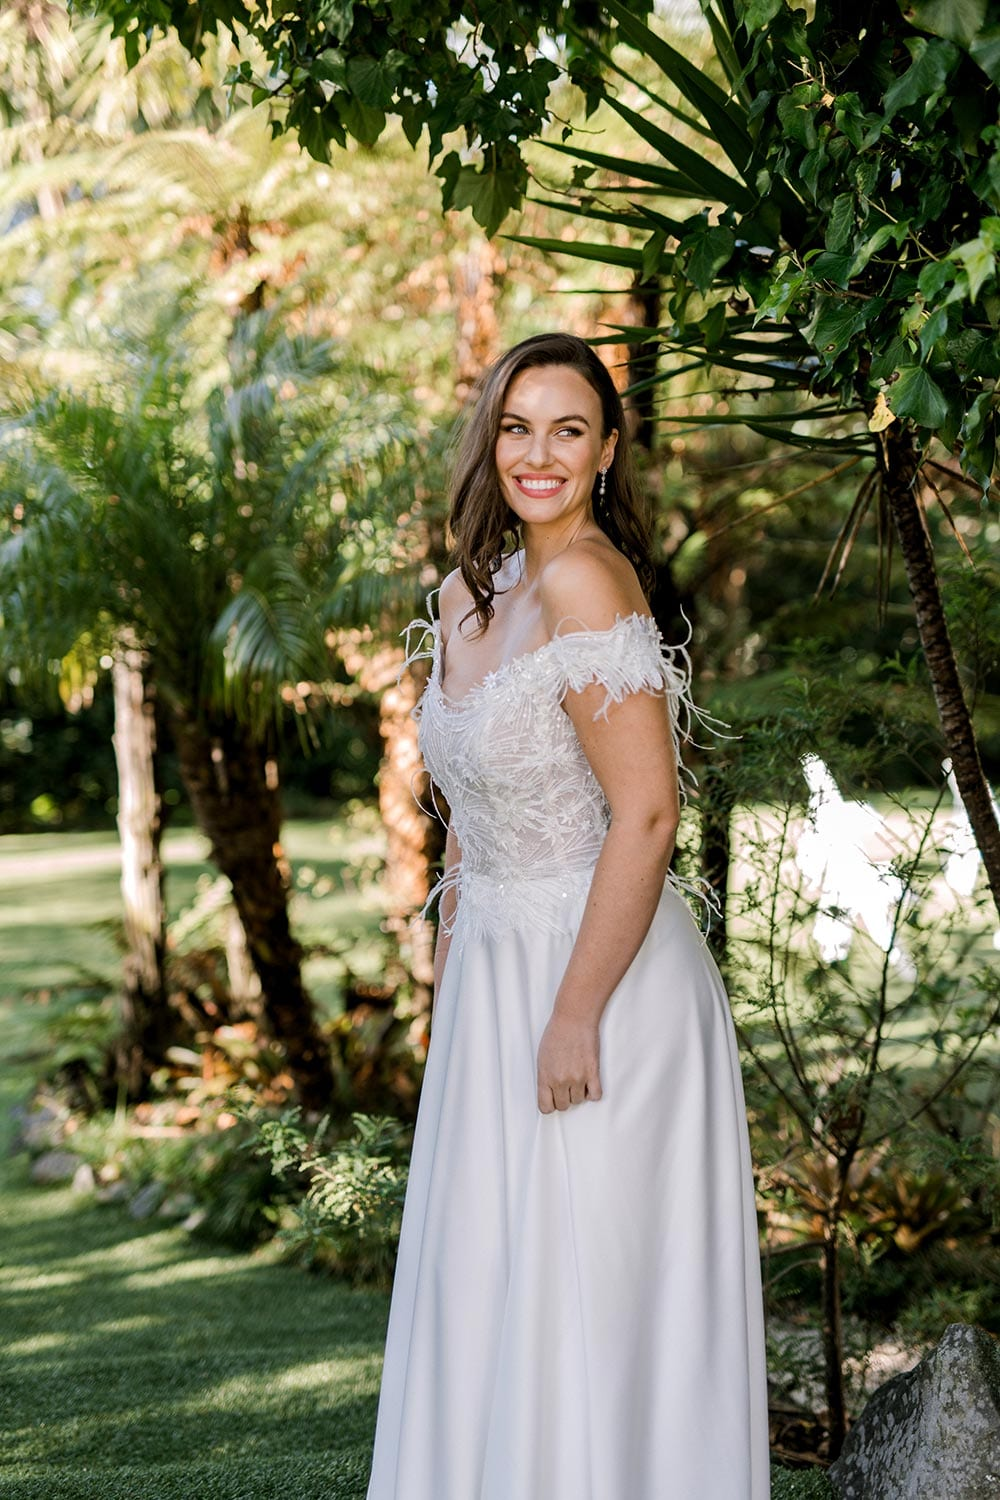 Genevive Wedding Dress from Vinka Design. The soft off-the-shoulder sleeves & semi-sheer structured bodice with hand-appliqued lace and a soft satin skirt make this a romantic & dreamy wedding dress. Side detail of dress, photographed at Tui Hills.